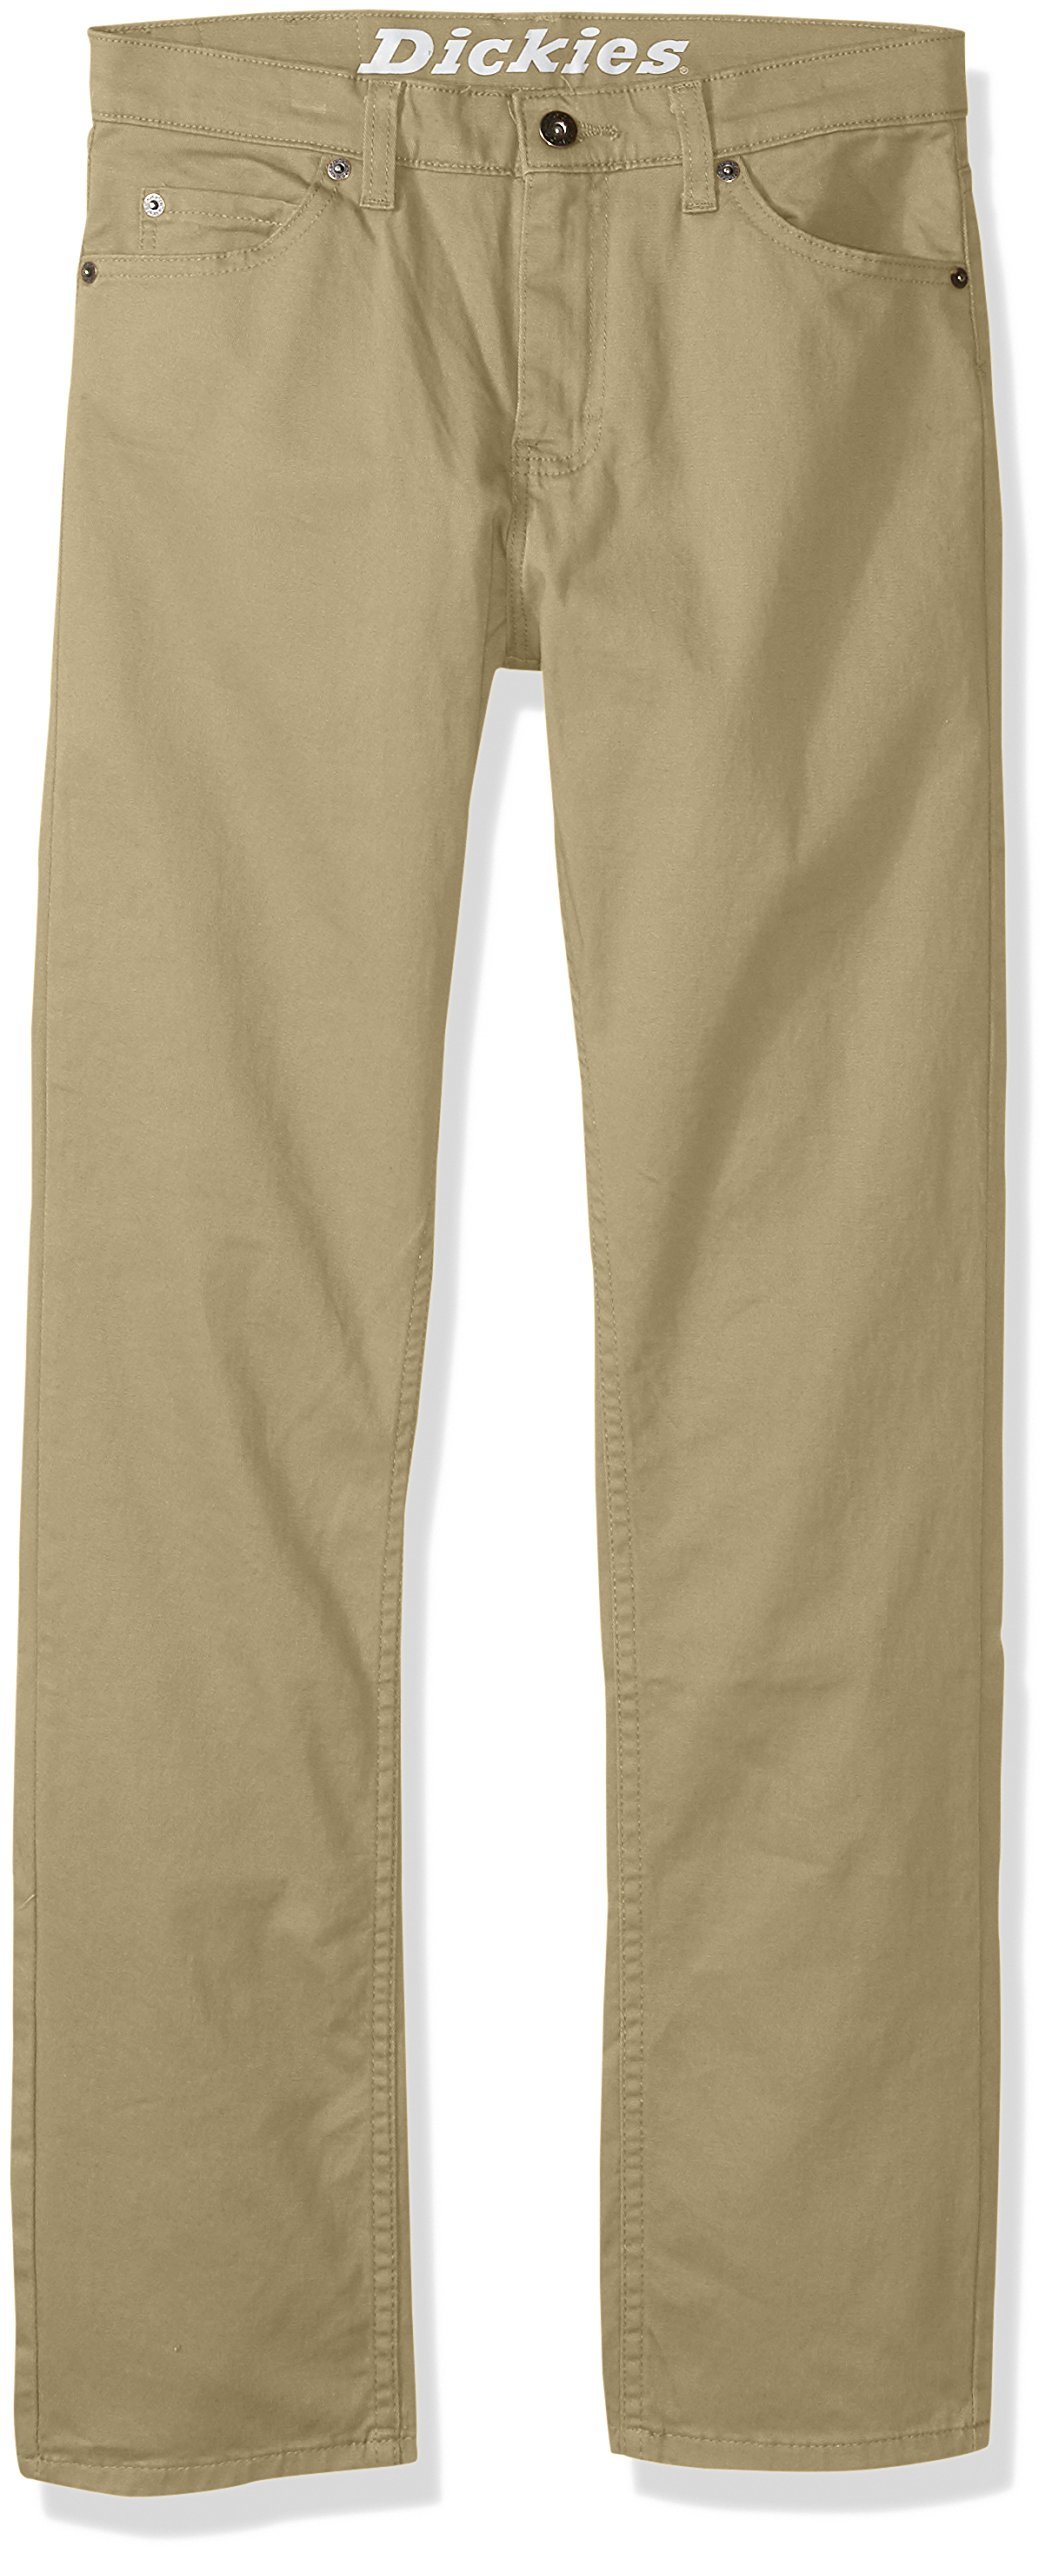 dickies Boys' Big Flex Twill Pant-Slim Taper Fit, Rinsed Desert Sand, 14 by dickies